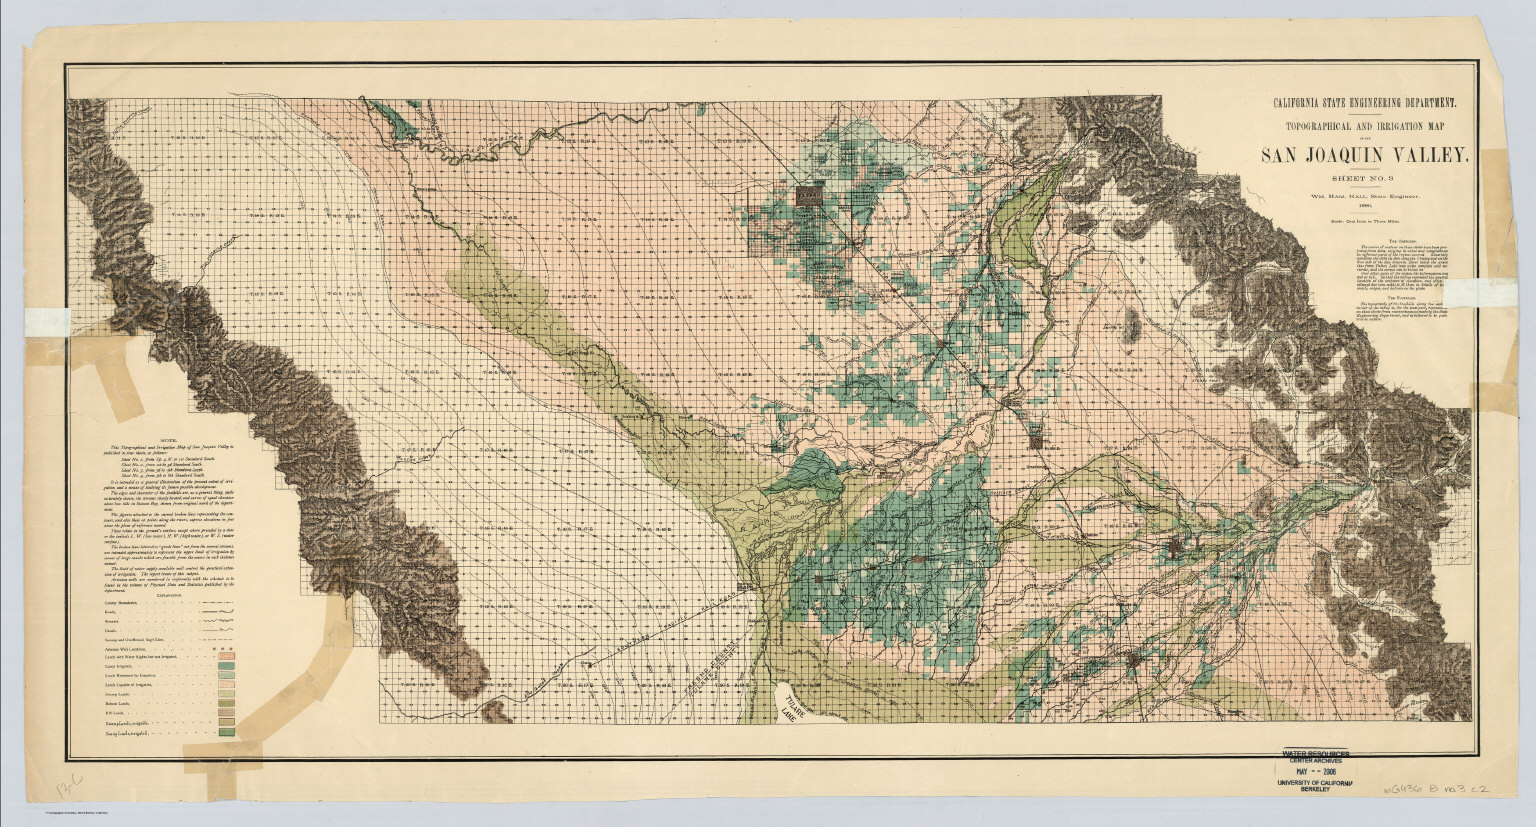 Sheet No 3 Southcentral Portion Irrigation Map of The San